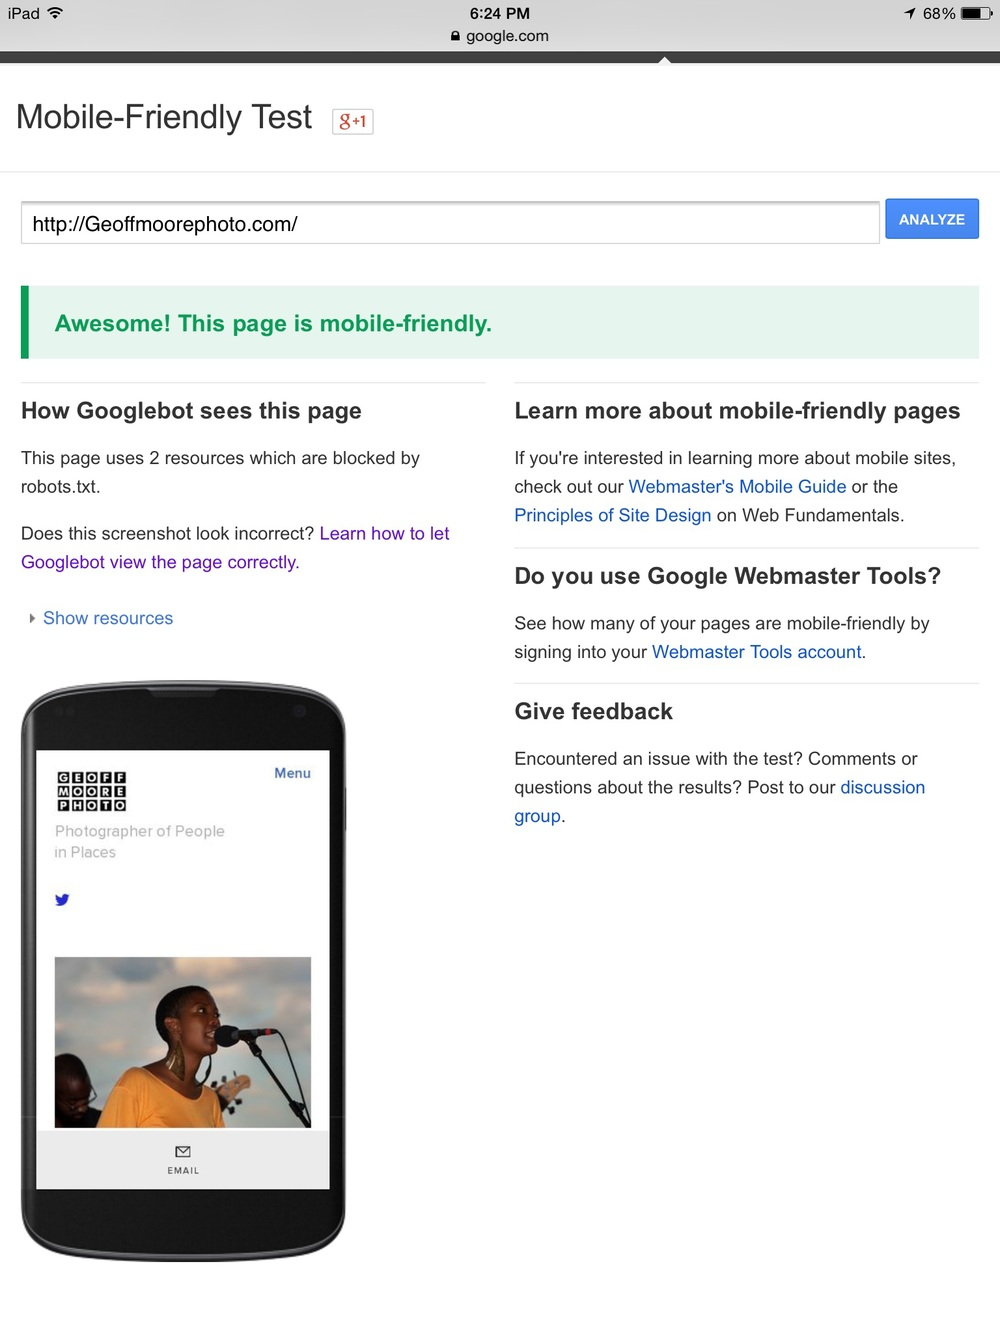 Squarespace website tested for mobile friendly suitability.